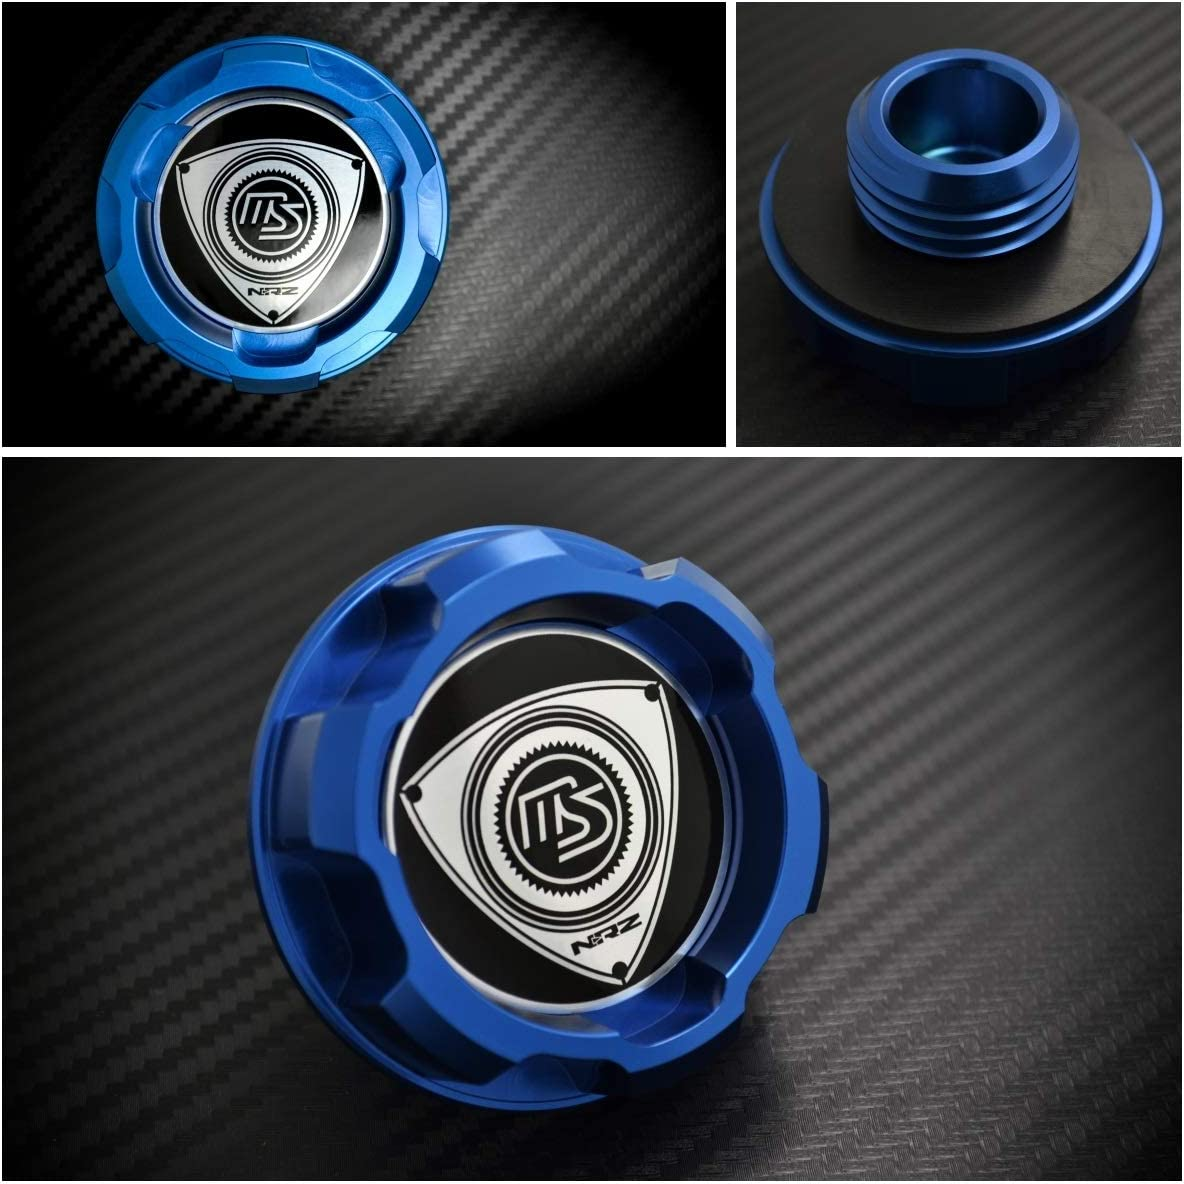 Fit for Protege FSDET Miata MX5 MX5 Color : Blue Fit for Familia BP 1.8L YJDTYM Aluminium Huile Moteur Cap//Fit for Mazda RX7 RX8 323